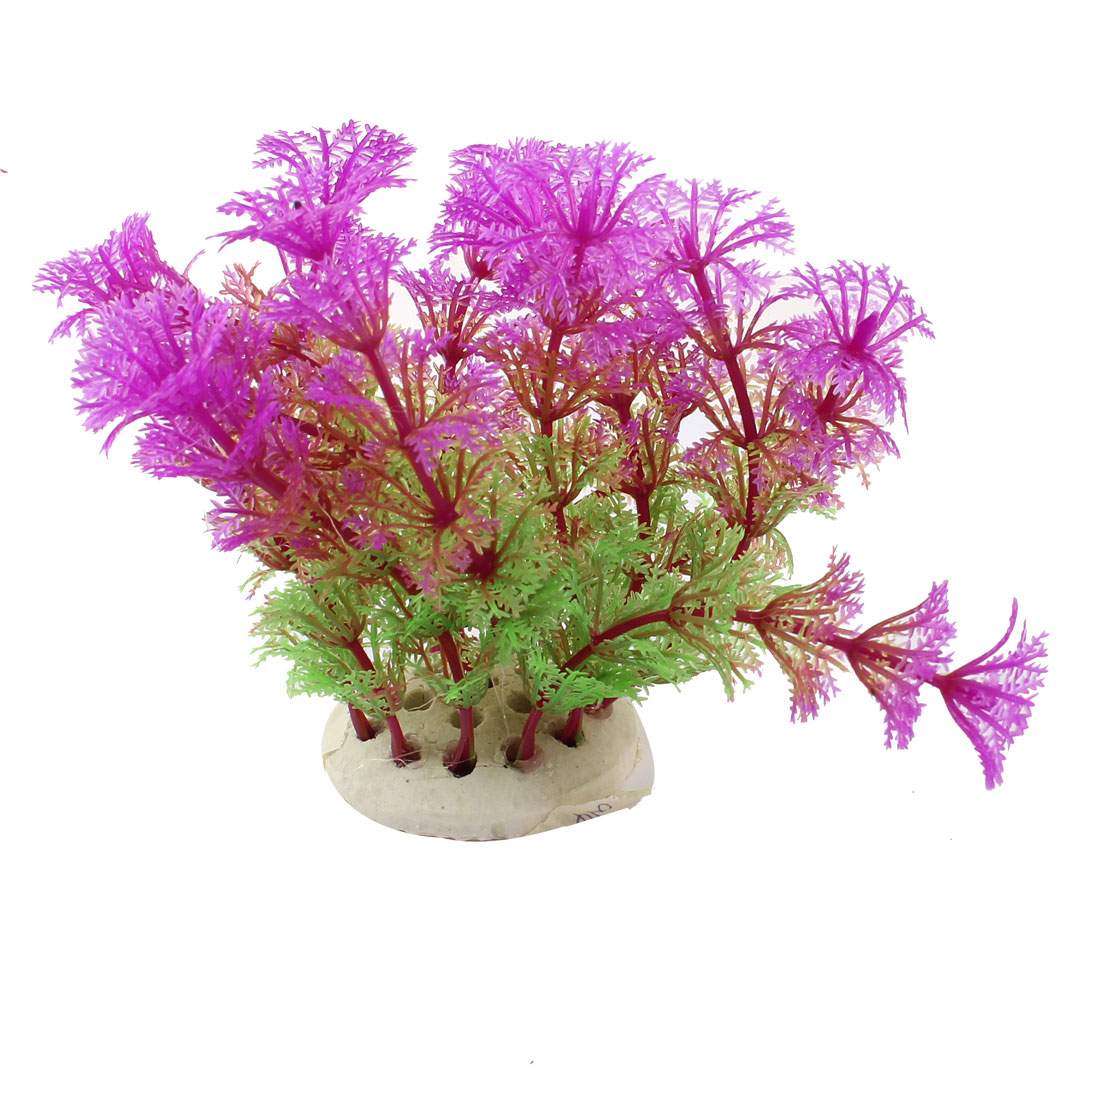 Fish Tank Aquarium Decor Green Fuchsia Emulational Plastic Vivid Grass 11cm High